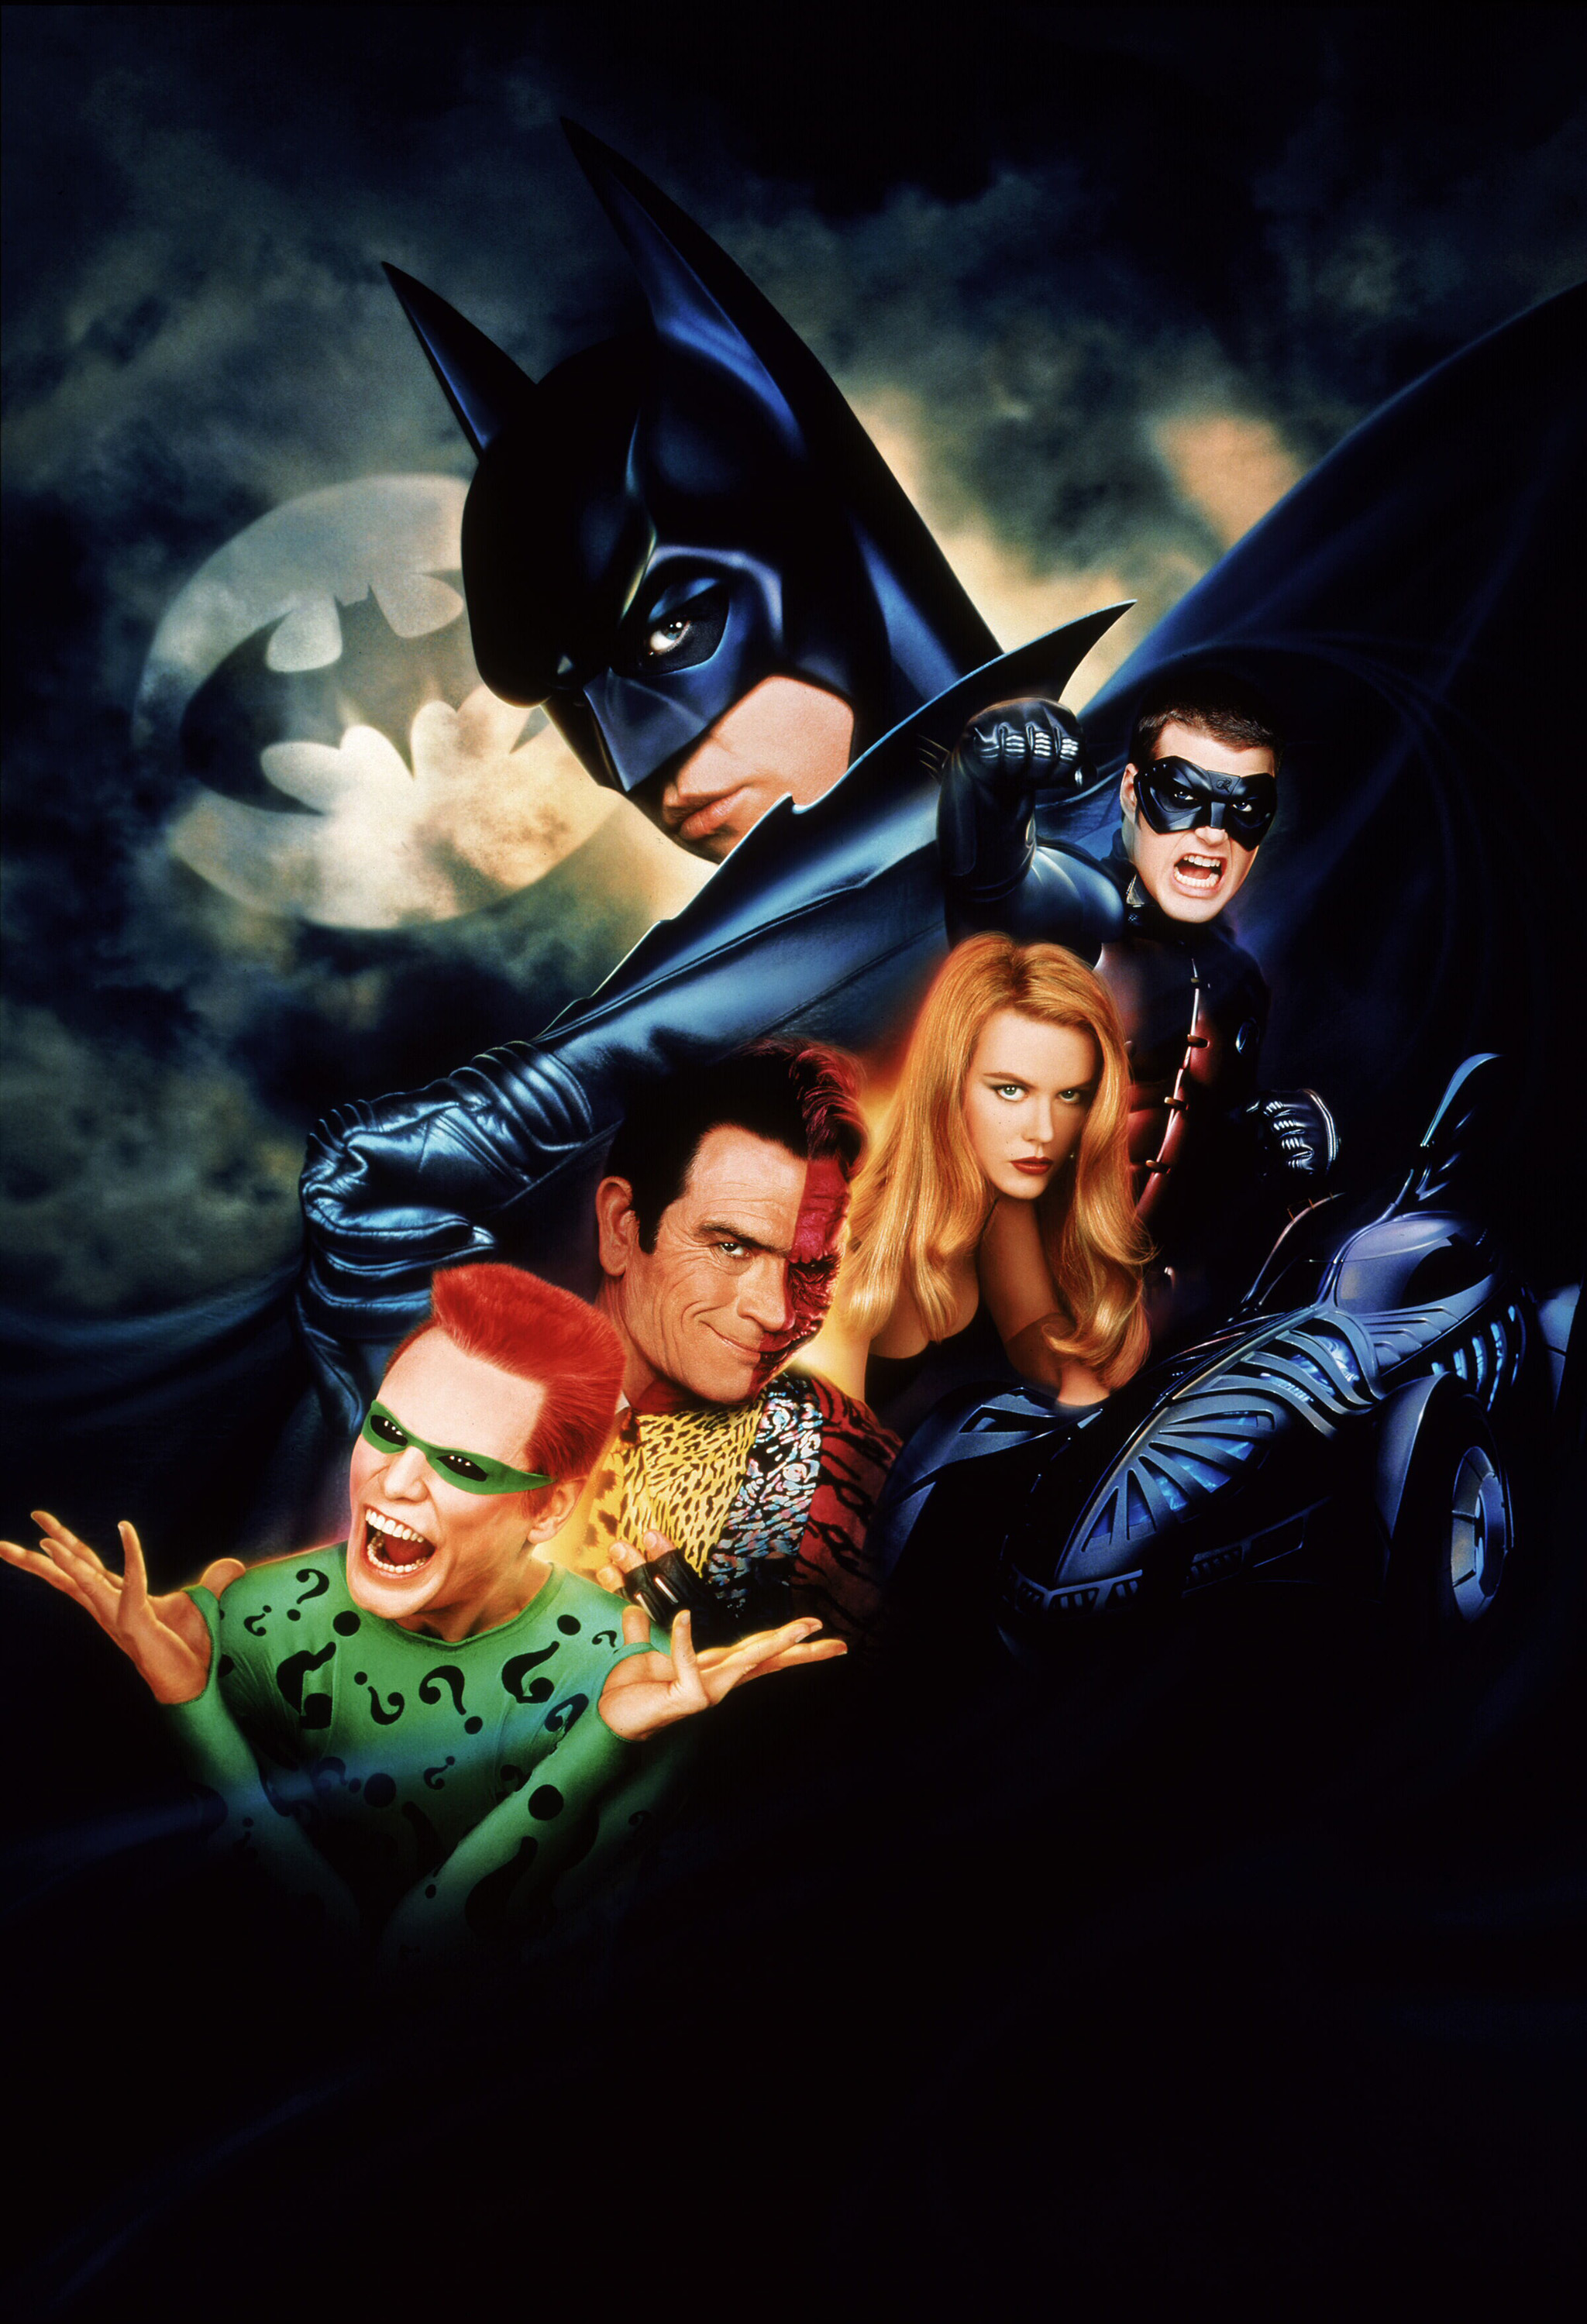 batmanforever02.jpg